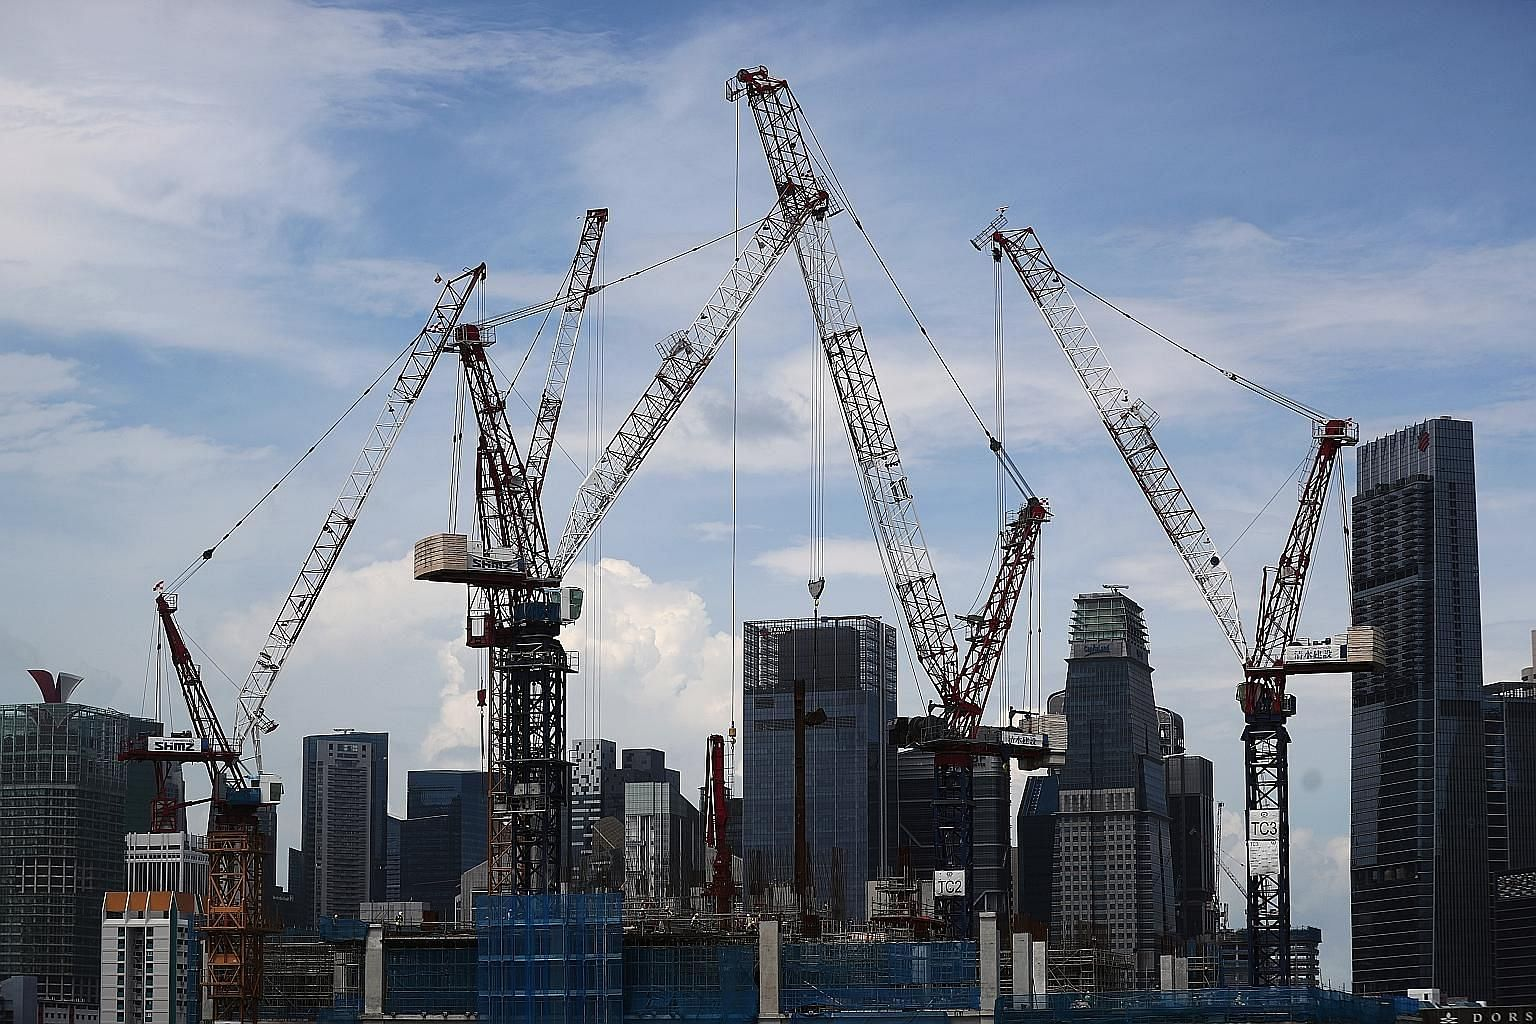 The Singapore economy no longer competes on wages, says the writer, adding that the country now has to compete on superior productivity, innovation and organisation - things that cannot be fixed by any quick measure, and certainly not by the Governme